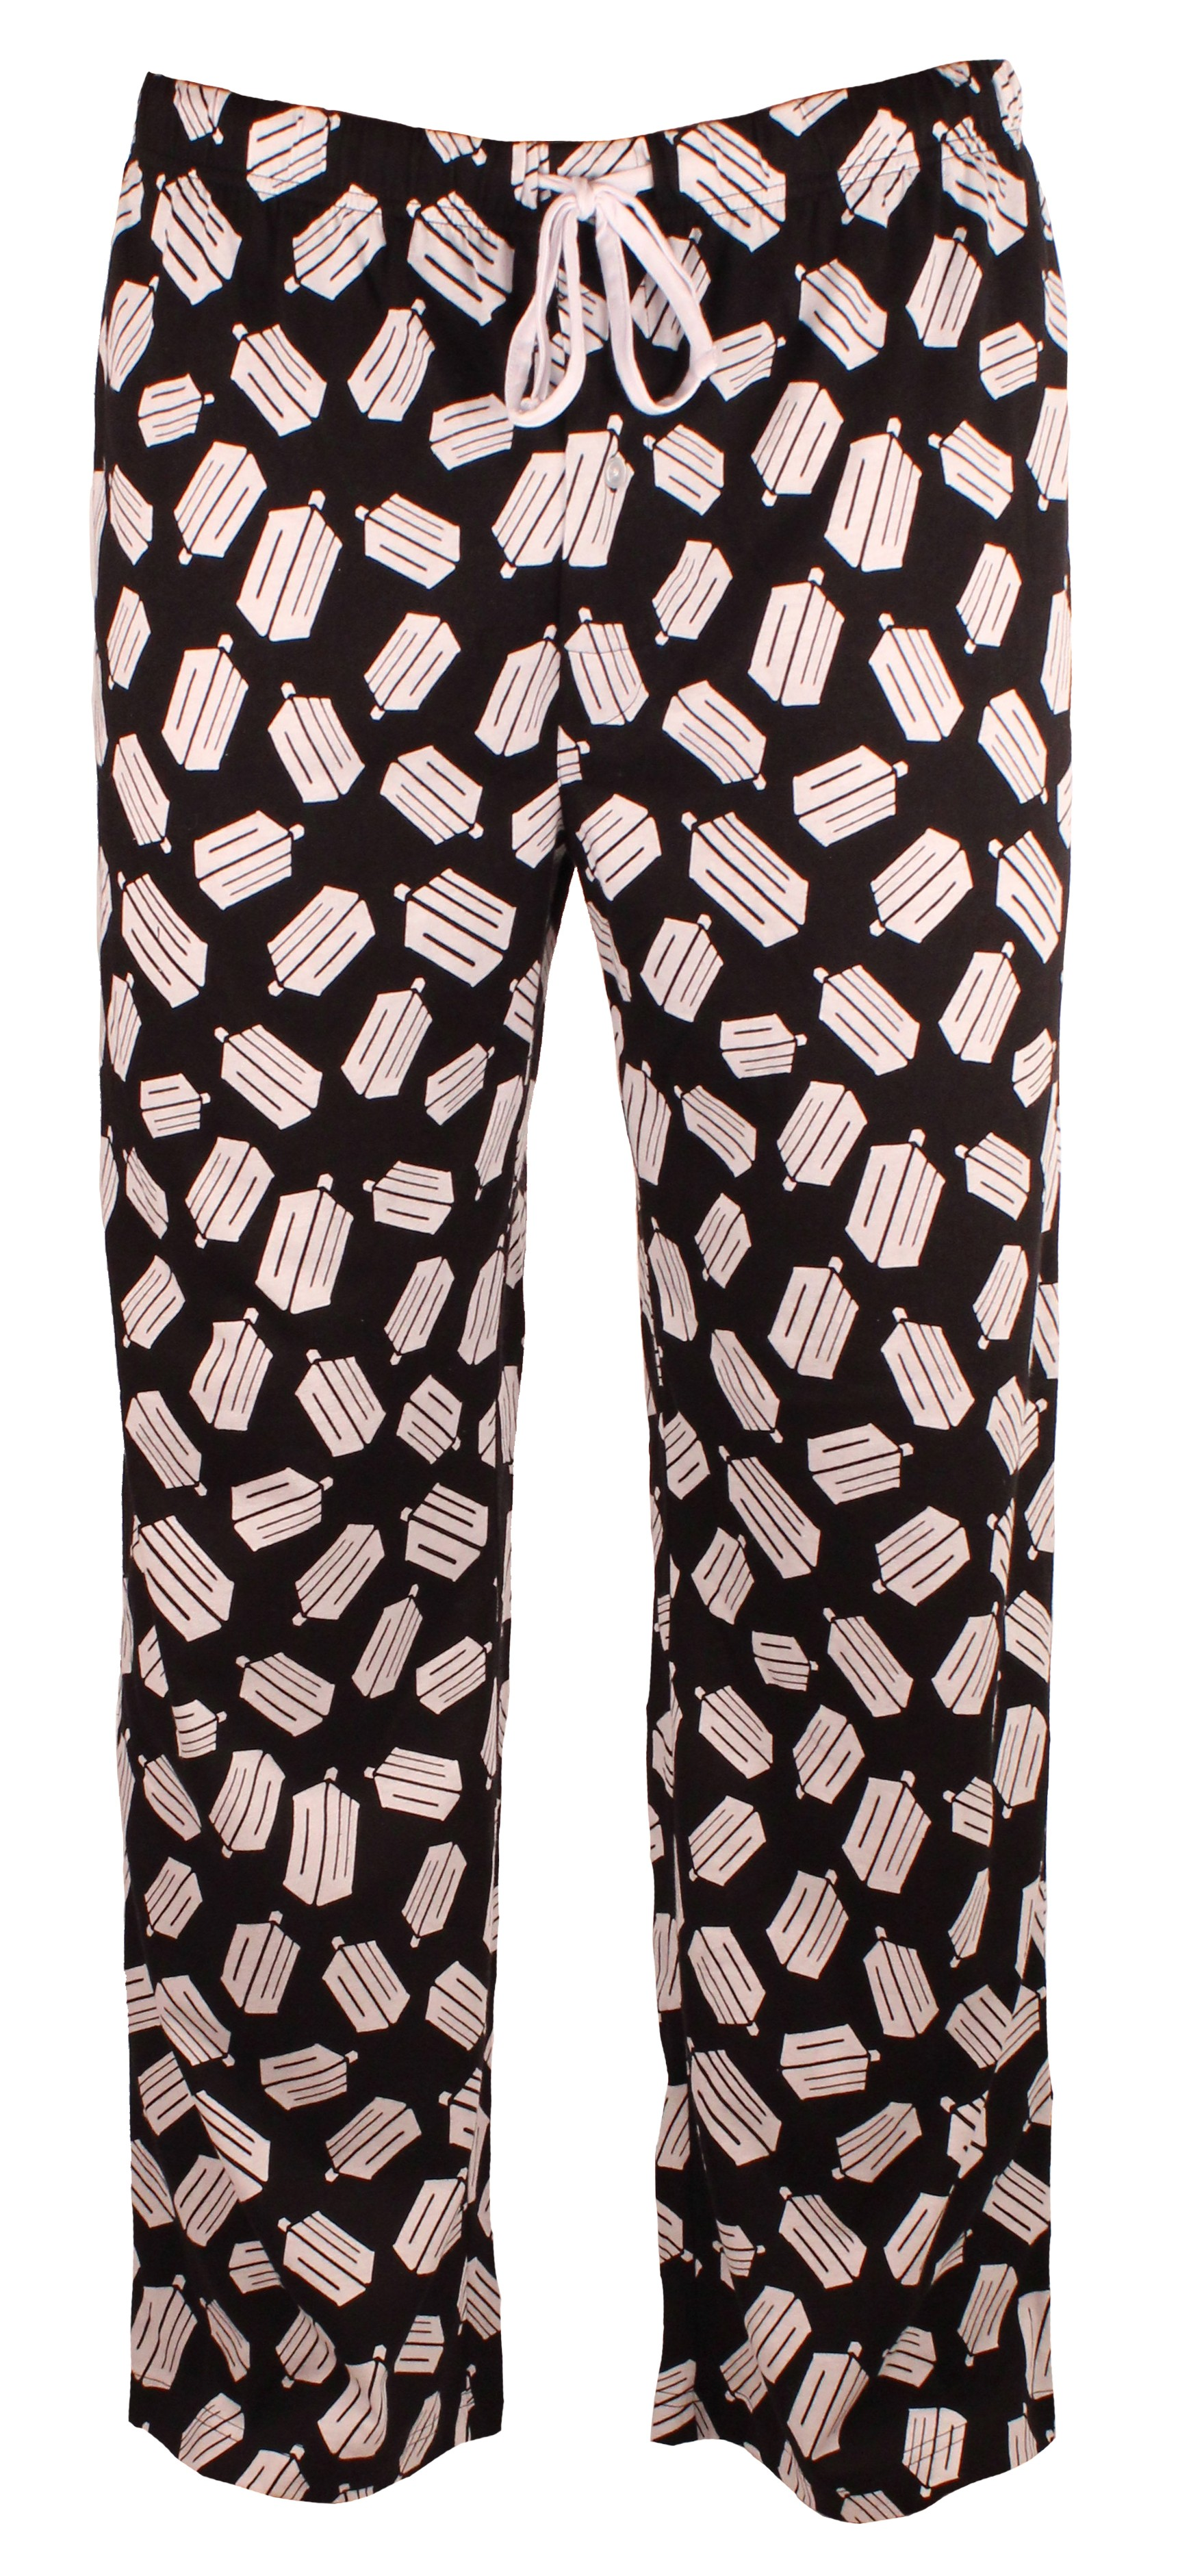 Doctor Who: White Logo All over Black Lounge Pants